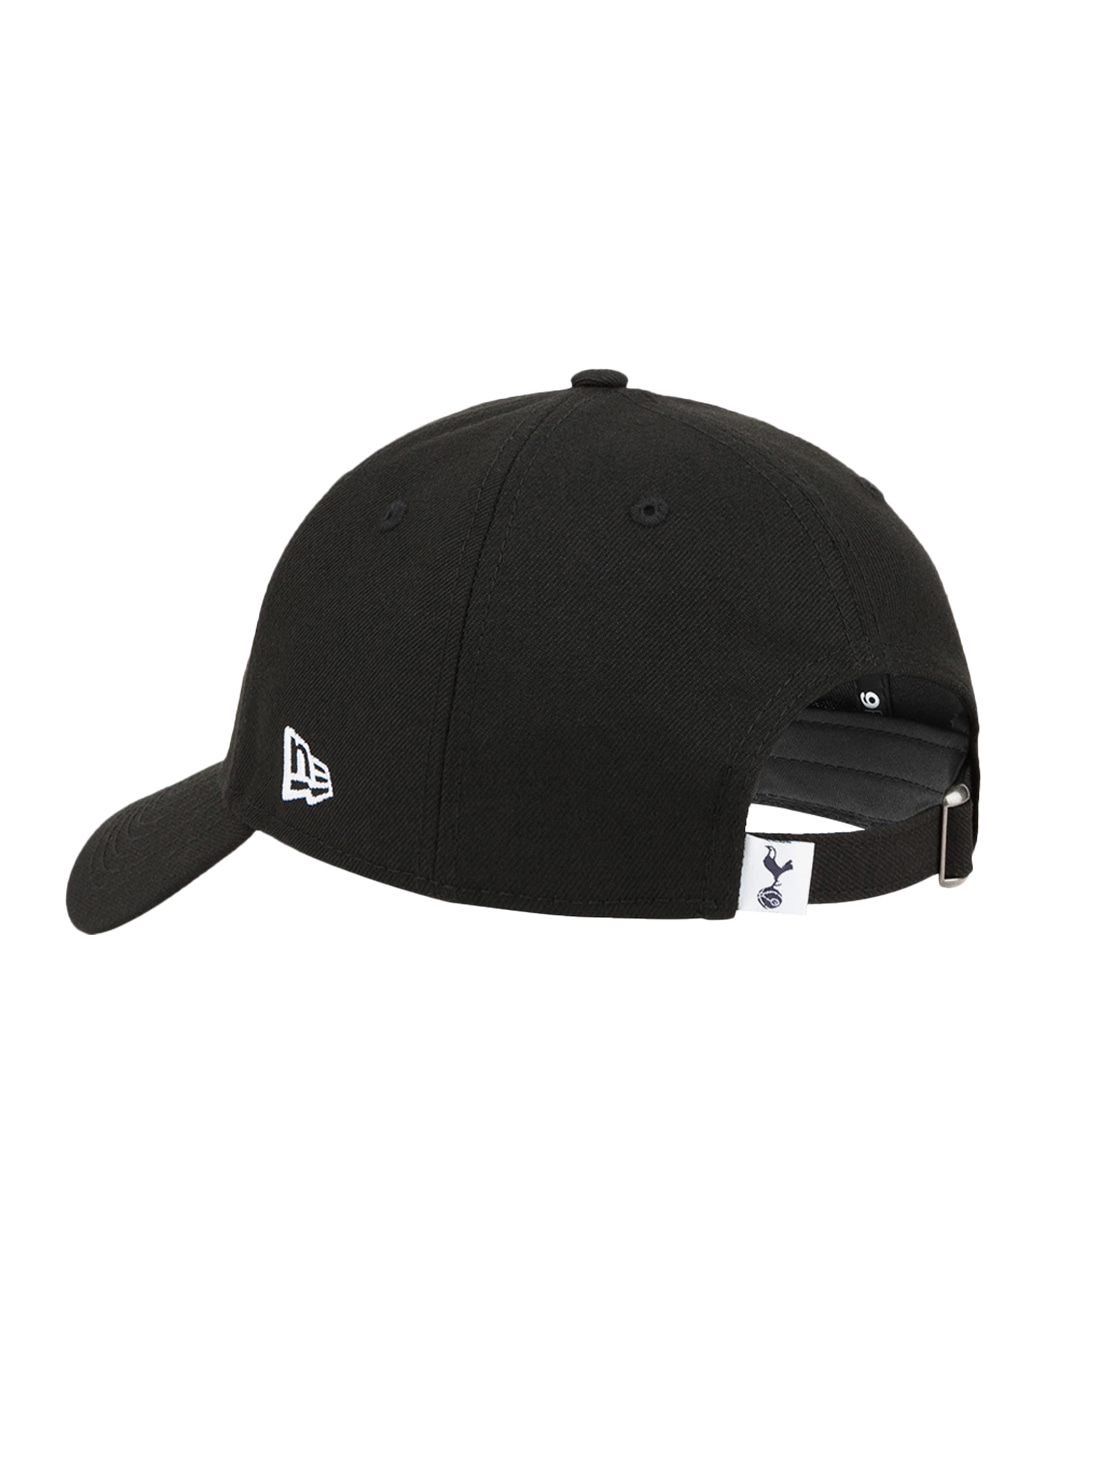 TOTTENHAM 940 BALL CAP - BLACK